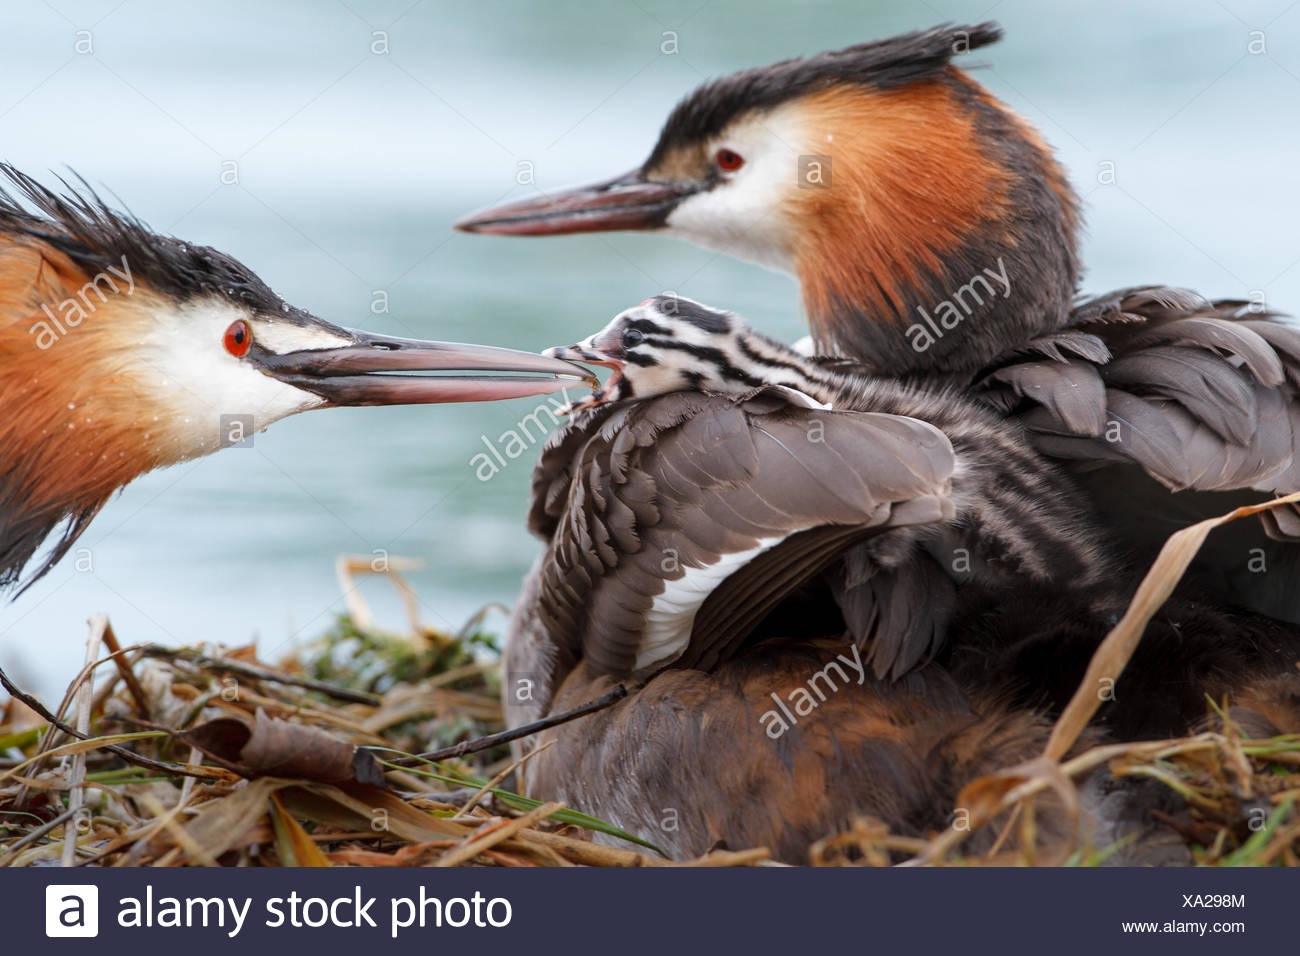 Great crested grebes (Podiceps cristatus) with young birds at the nest, feeding, Baden-Württemberg, Germany - Stock Image